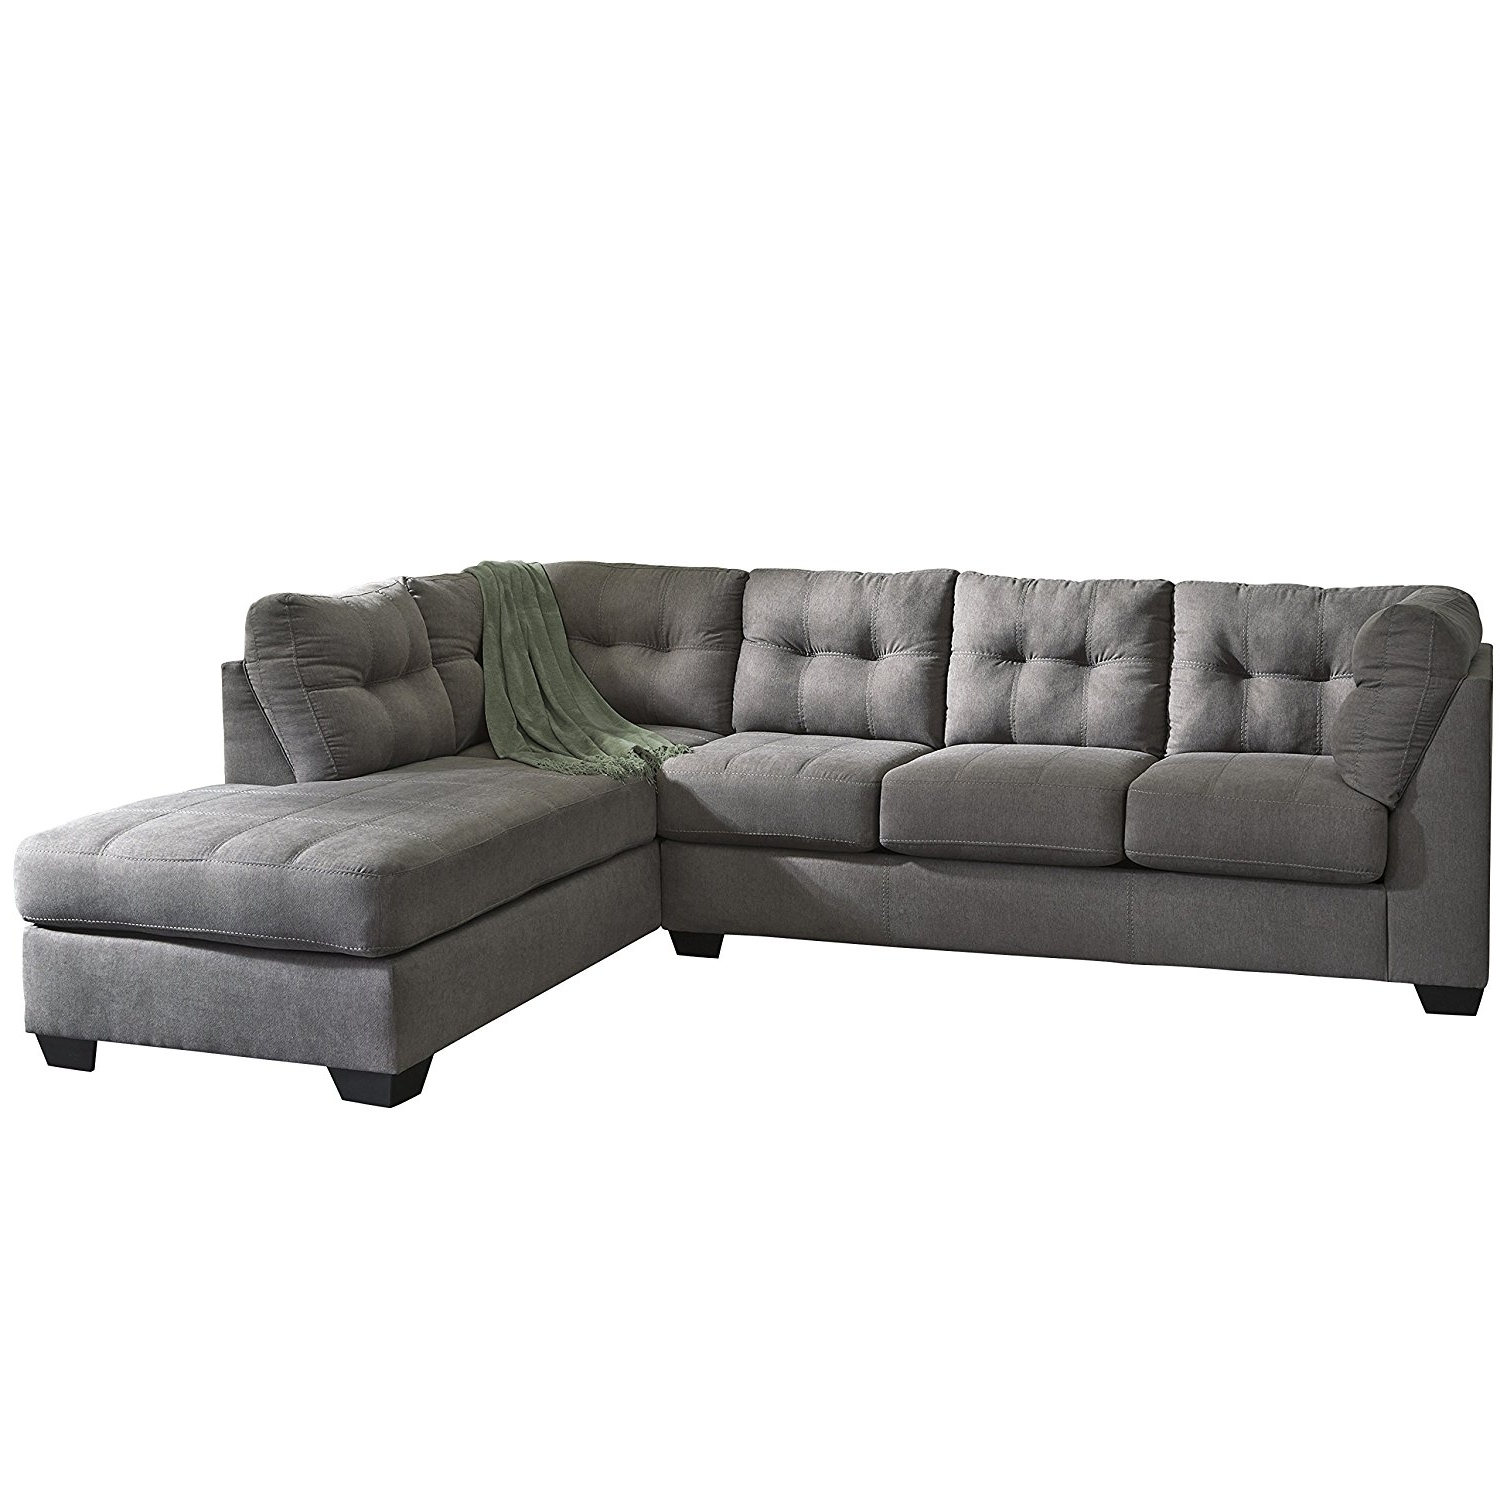 Amazon: Flash Furniture Benchcraft Maier Sectional With Right Pertaining To Recent Right Facing Chaise Sectionals (View 1 of 15)